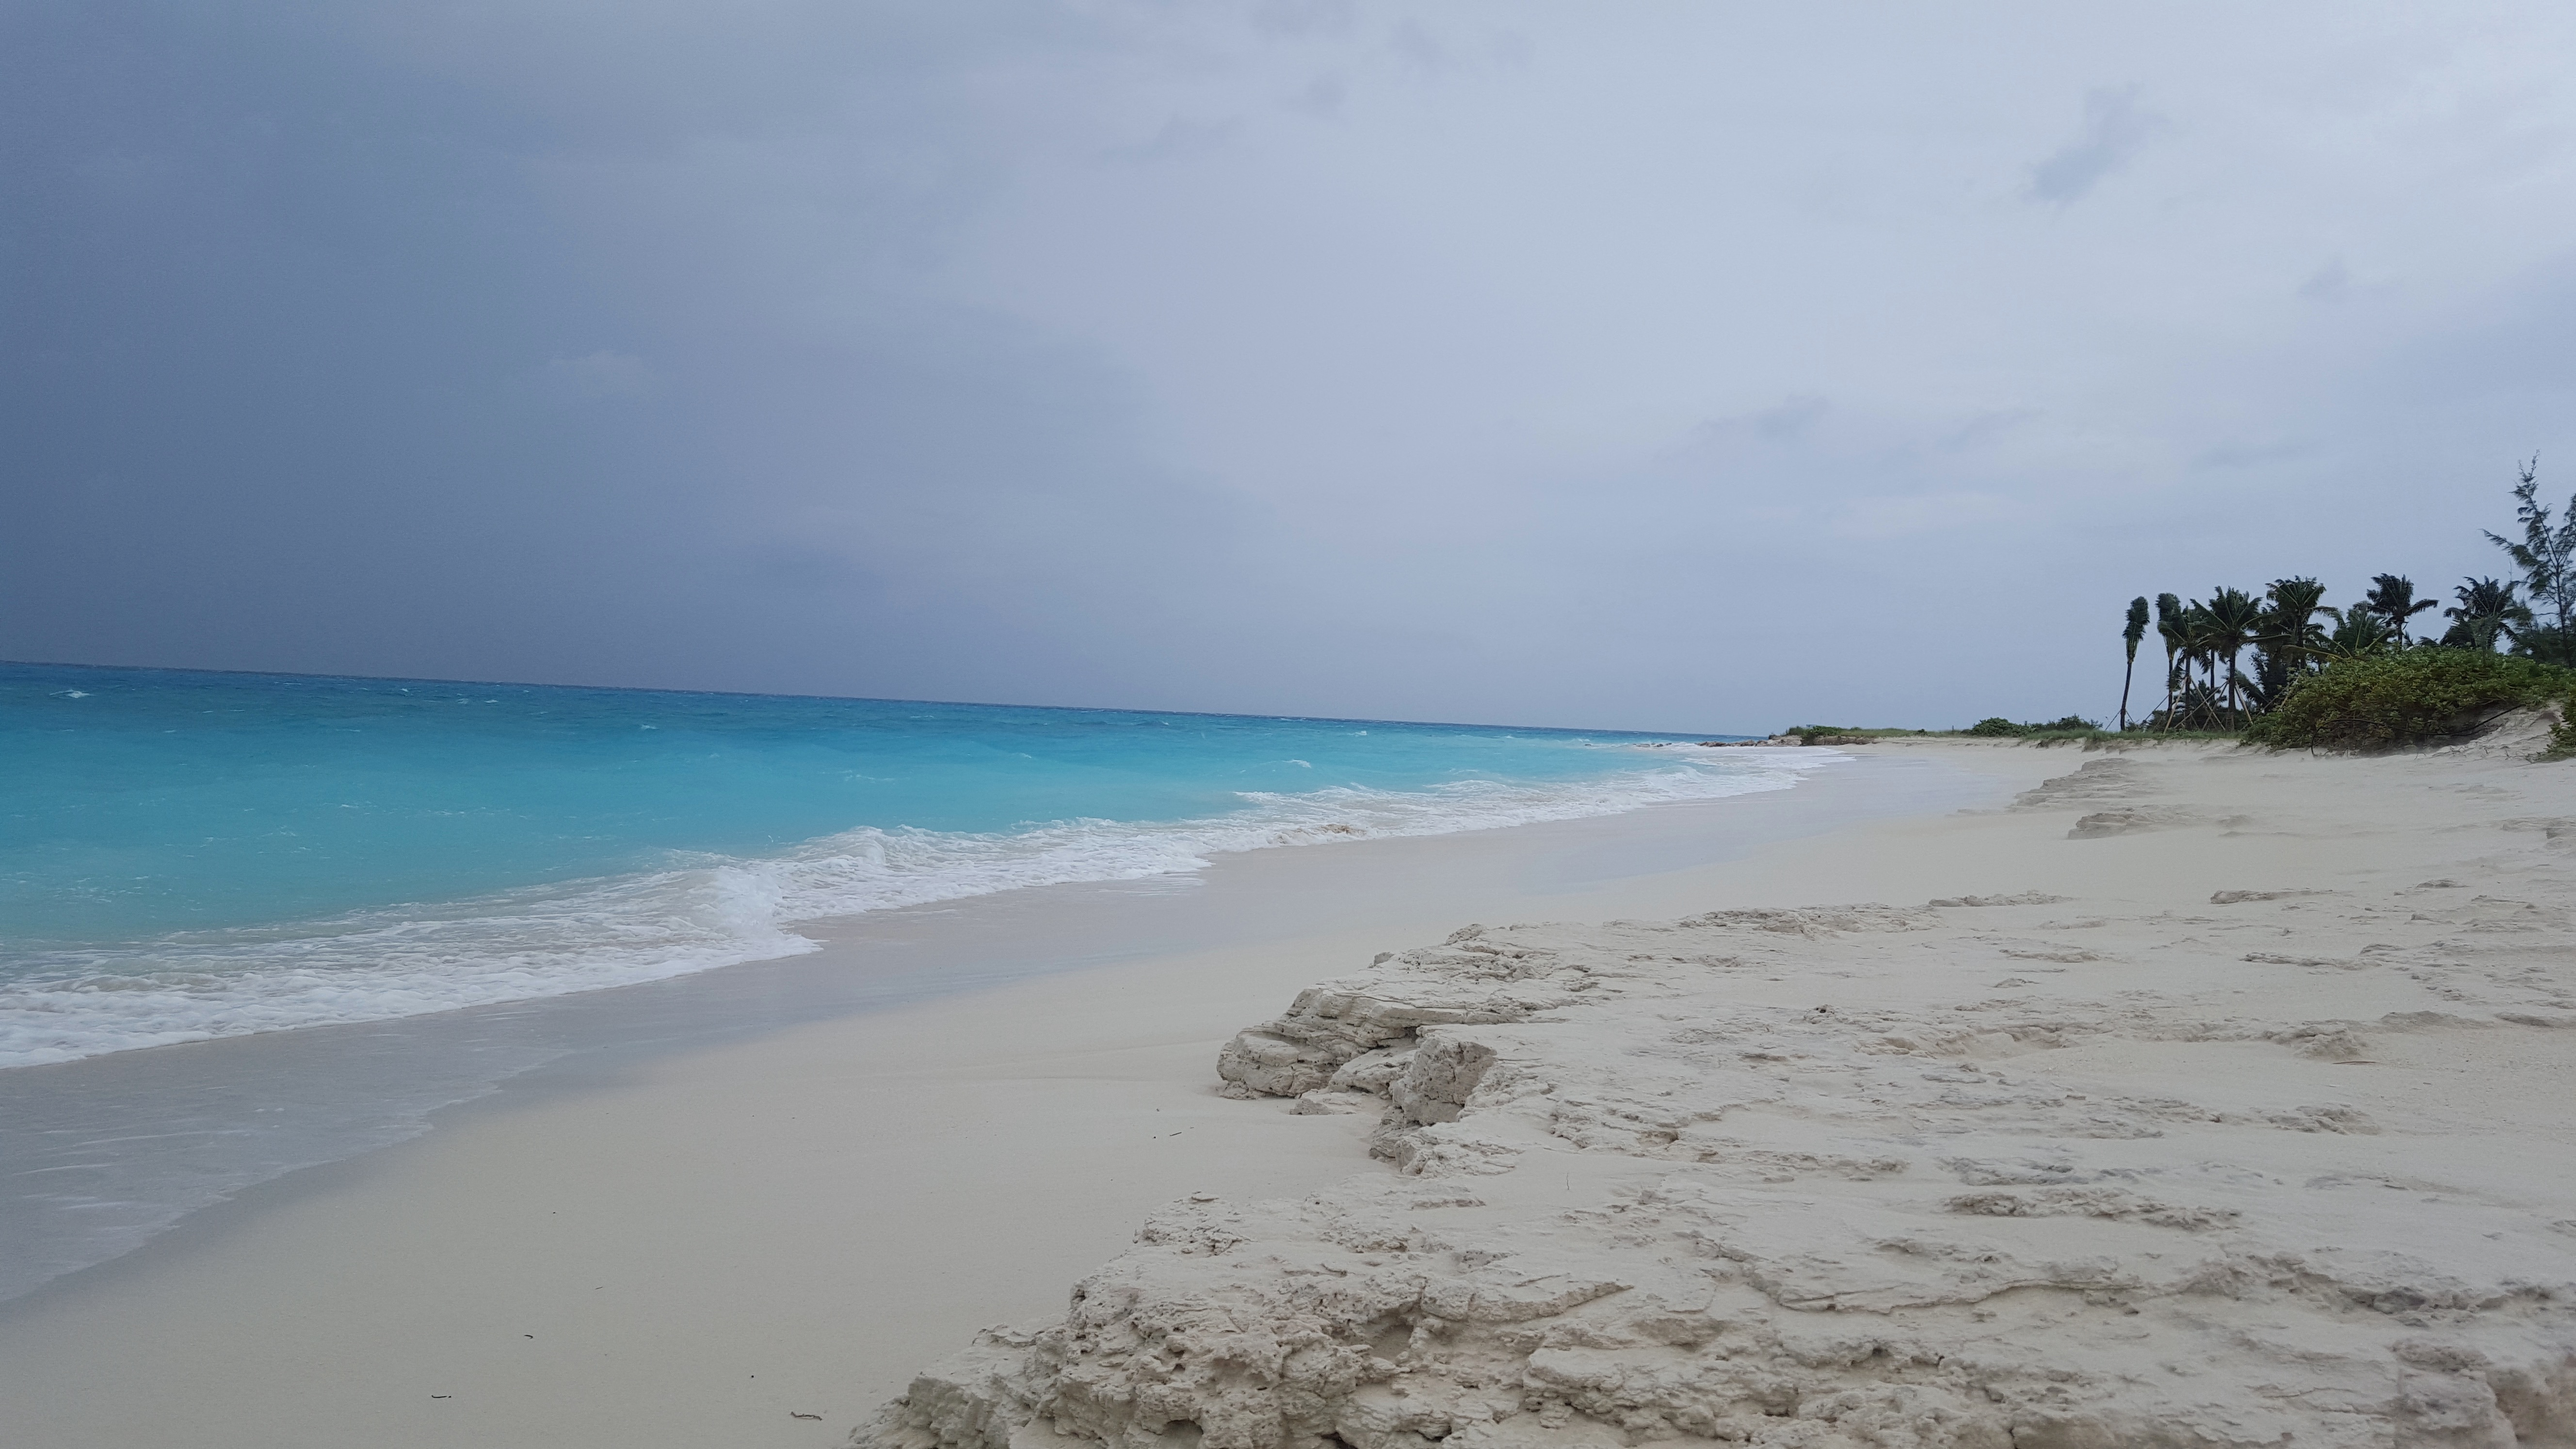 New Beach Sand Mining Restriction in The Turks and Caicos